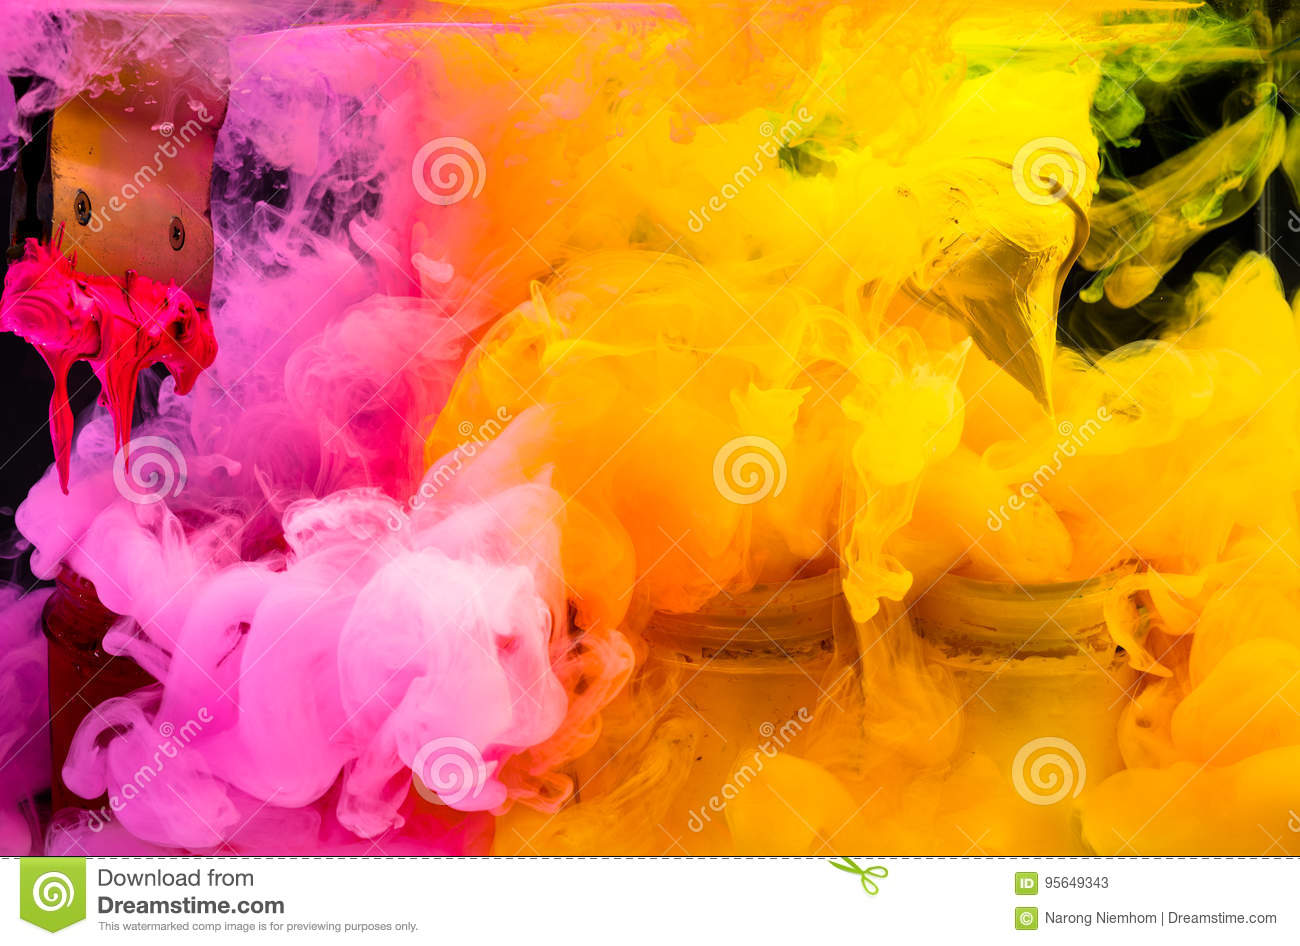 Place Orange Color Yellow And Red Of Plastisol Ink On Print Handle In To The Glass Water Box Then Splash Watercolor Into